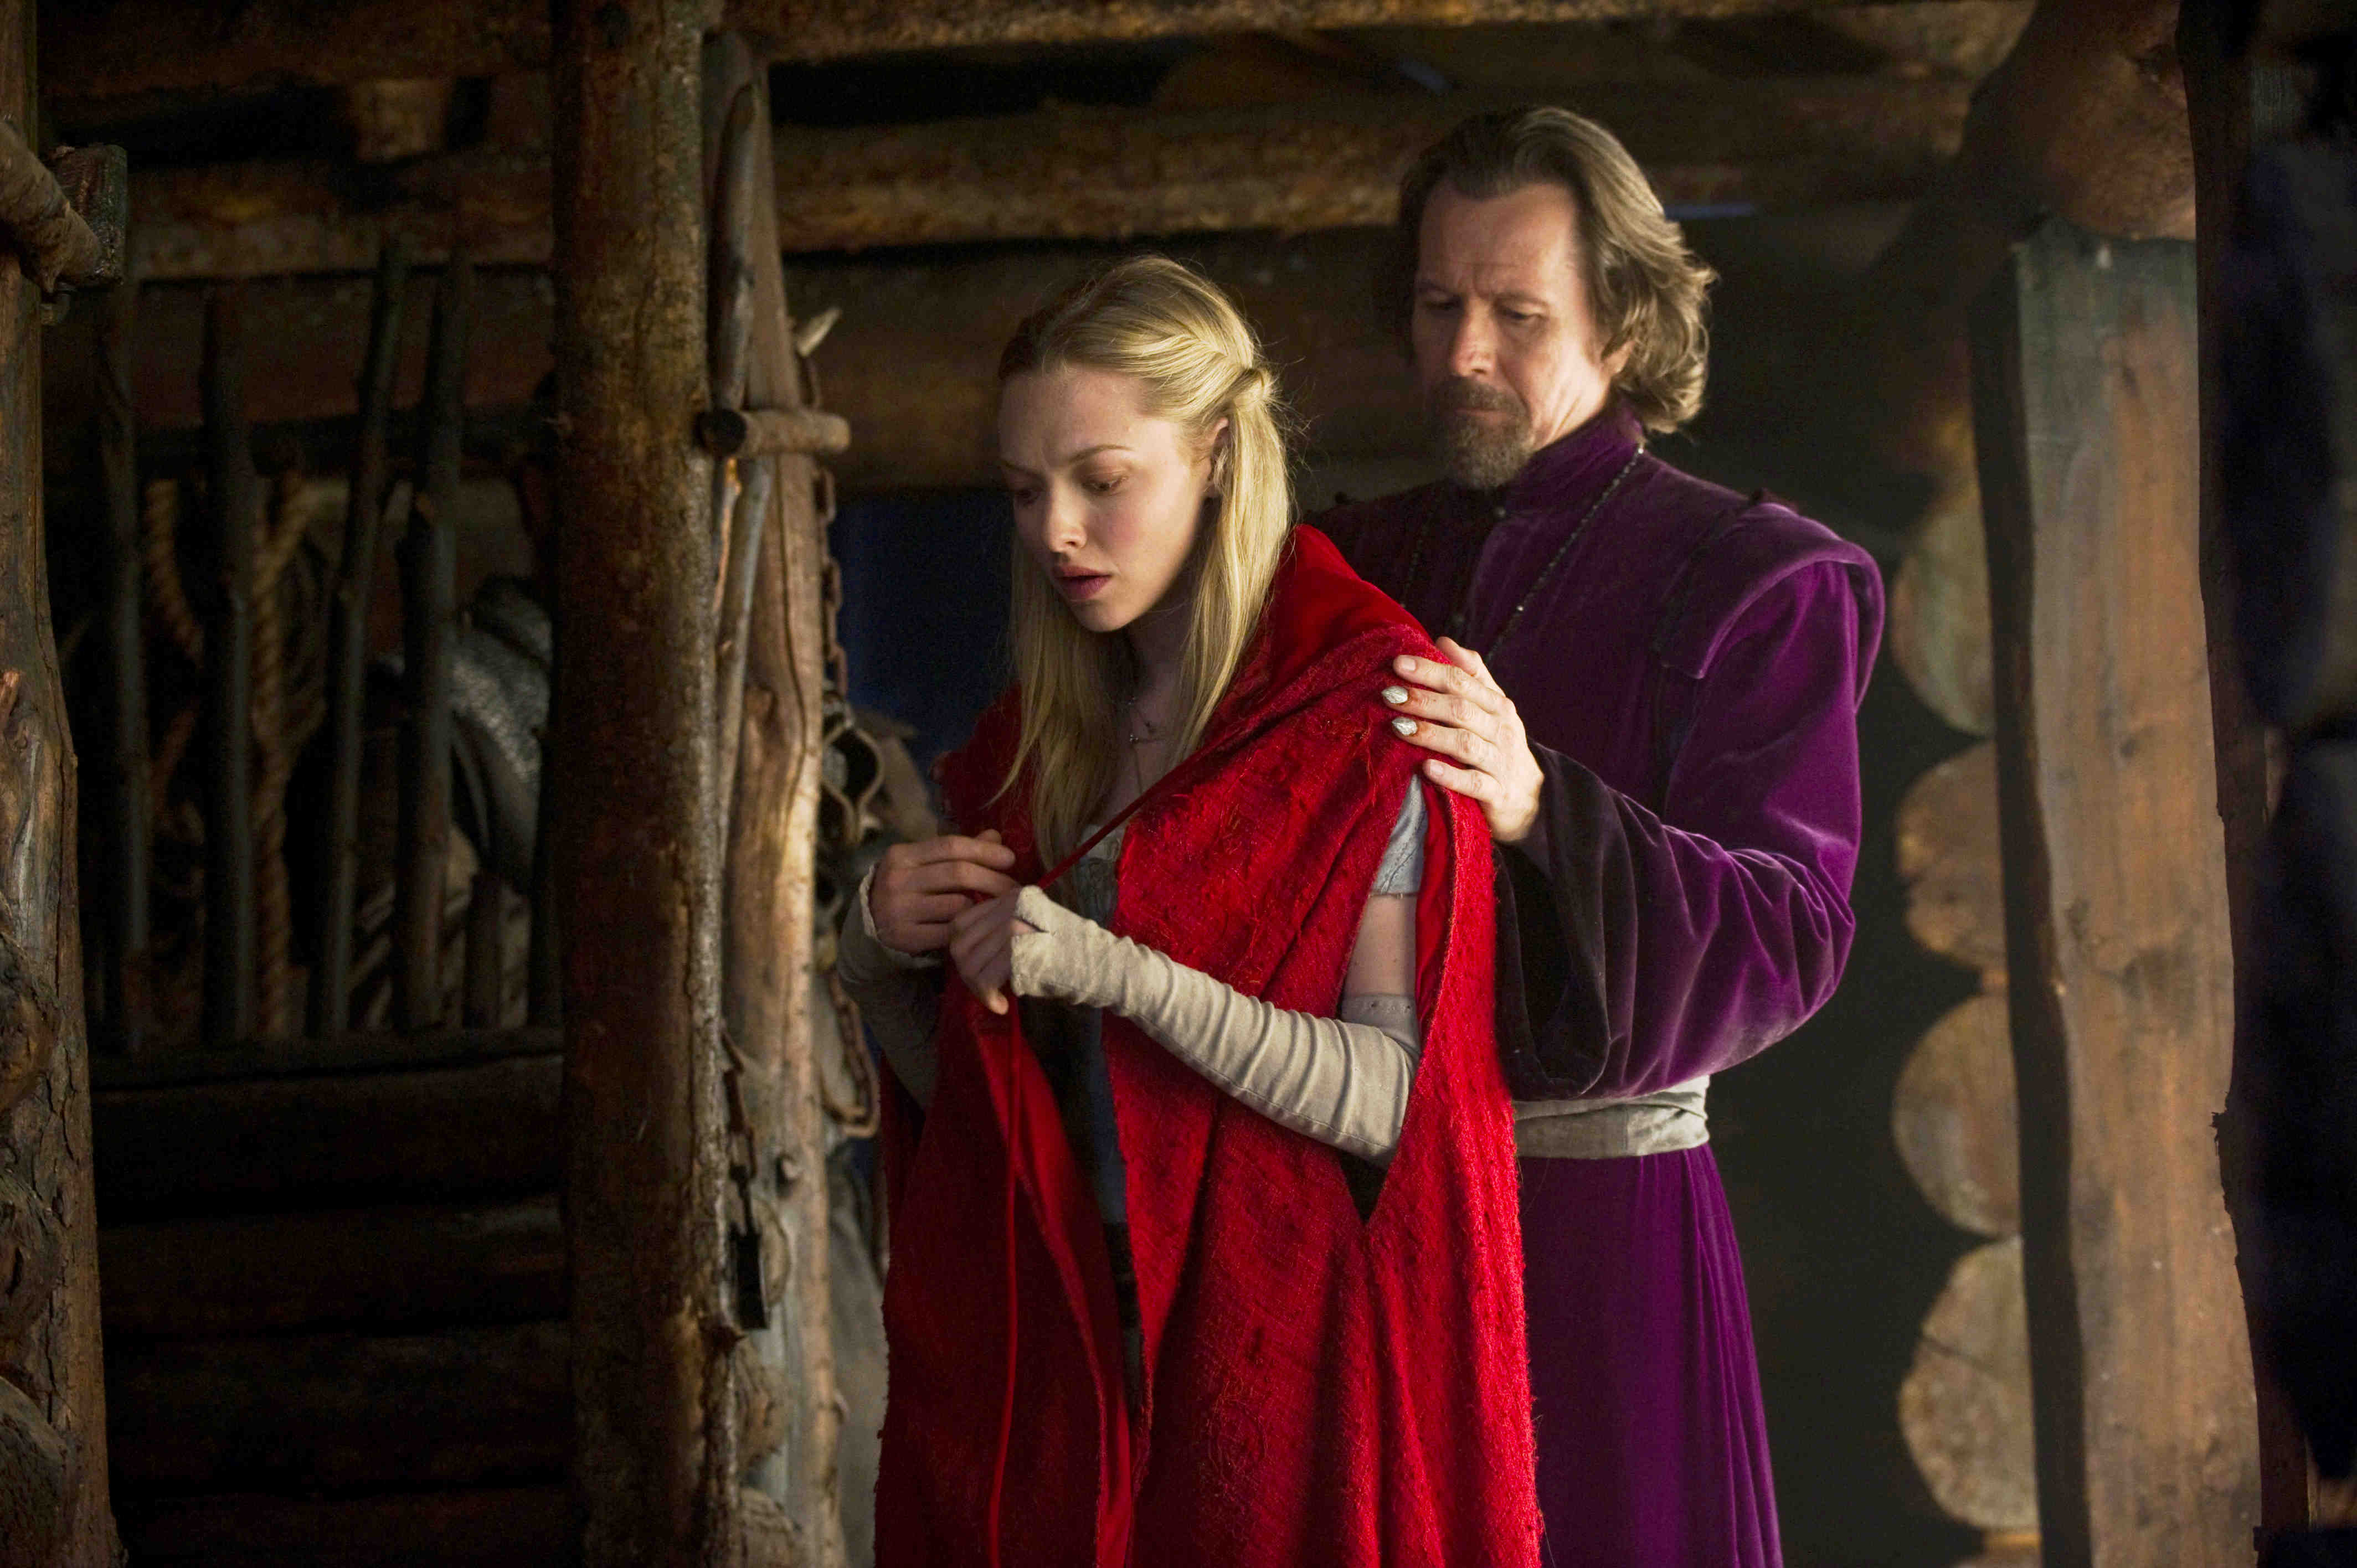 Valerie (Amanda Seyfried) and the monster hunter Father Solomon (Gary Oldman) in Red Riding Hood (2011)